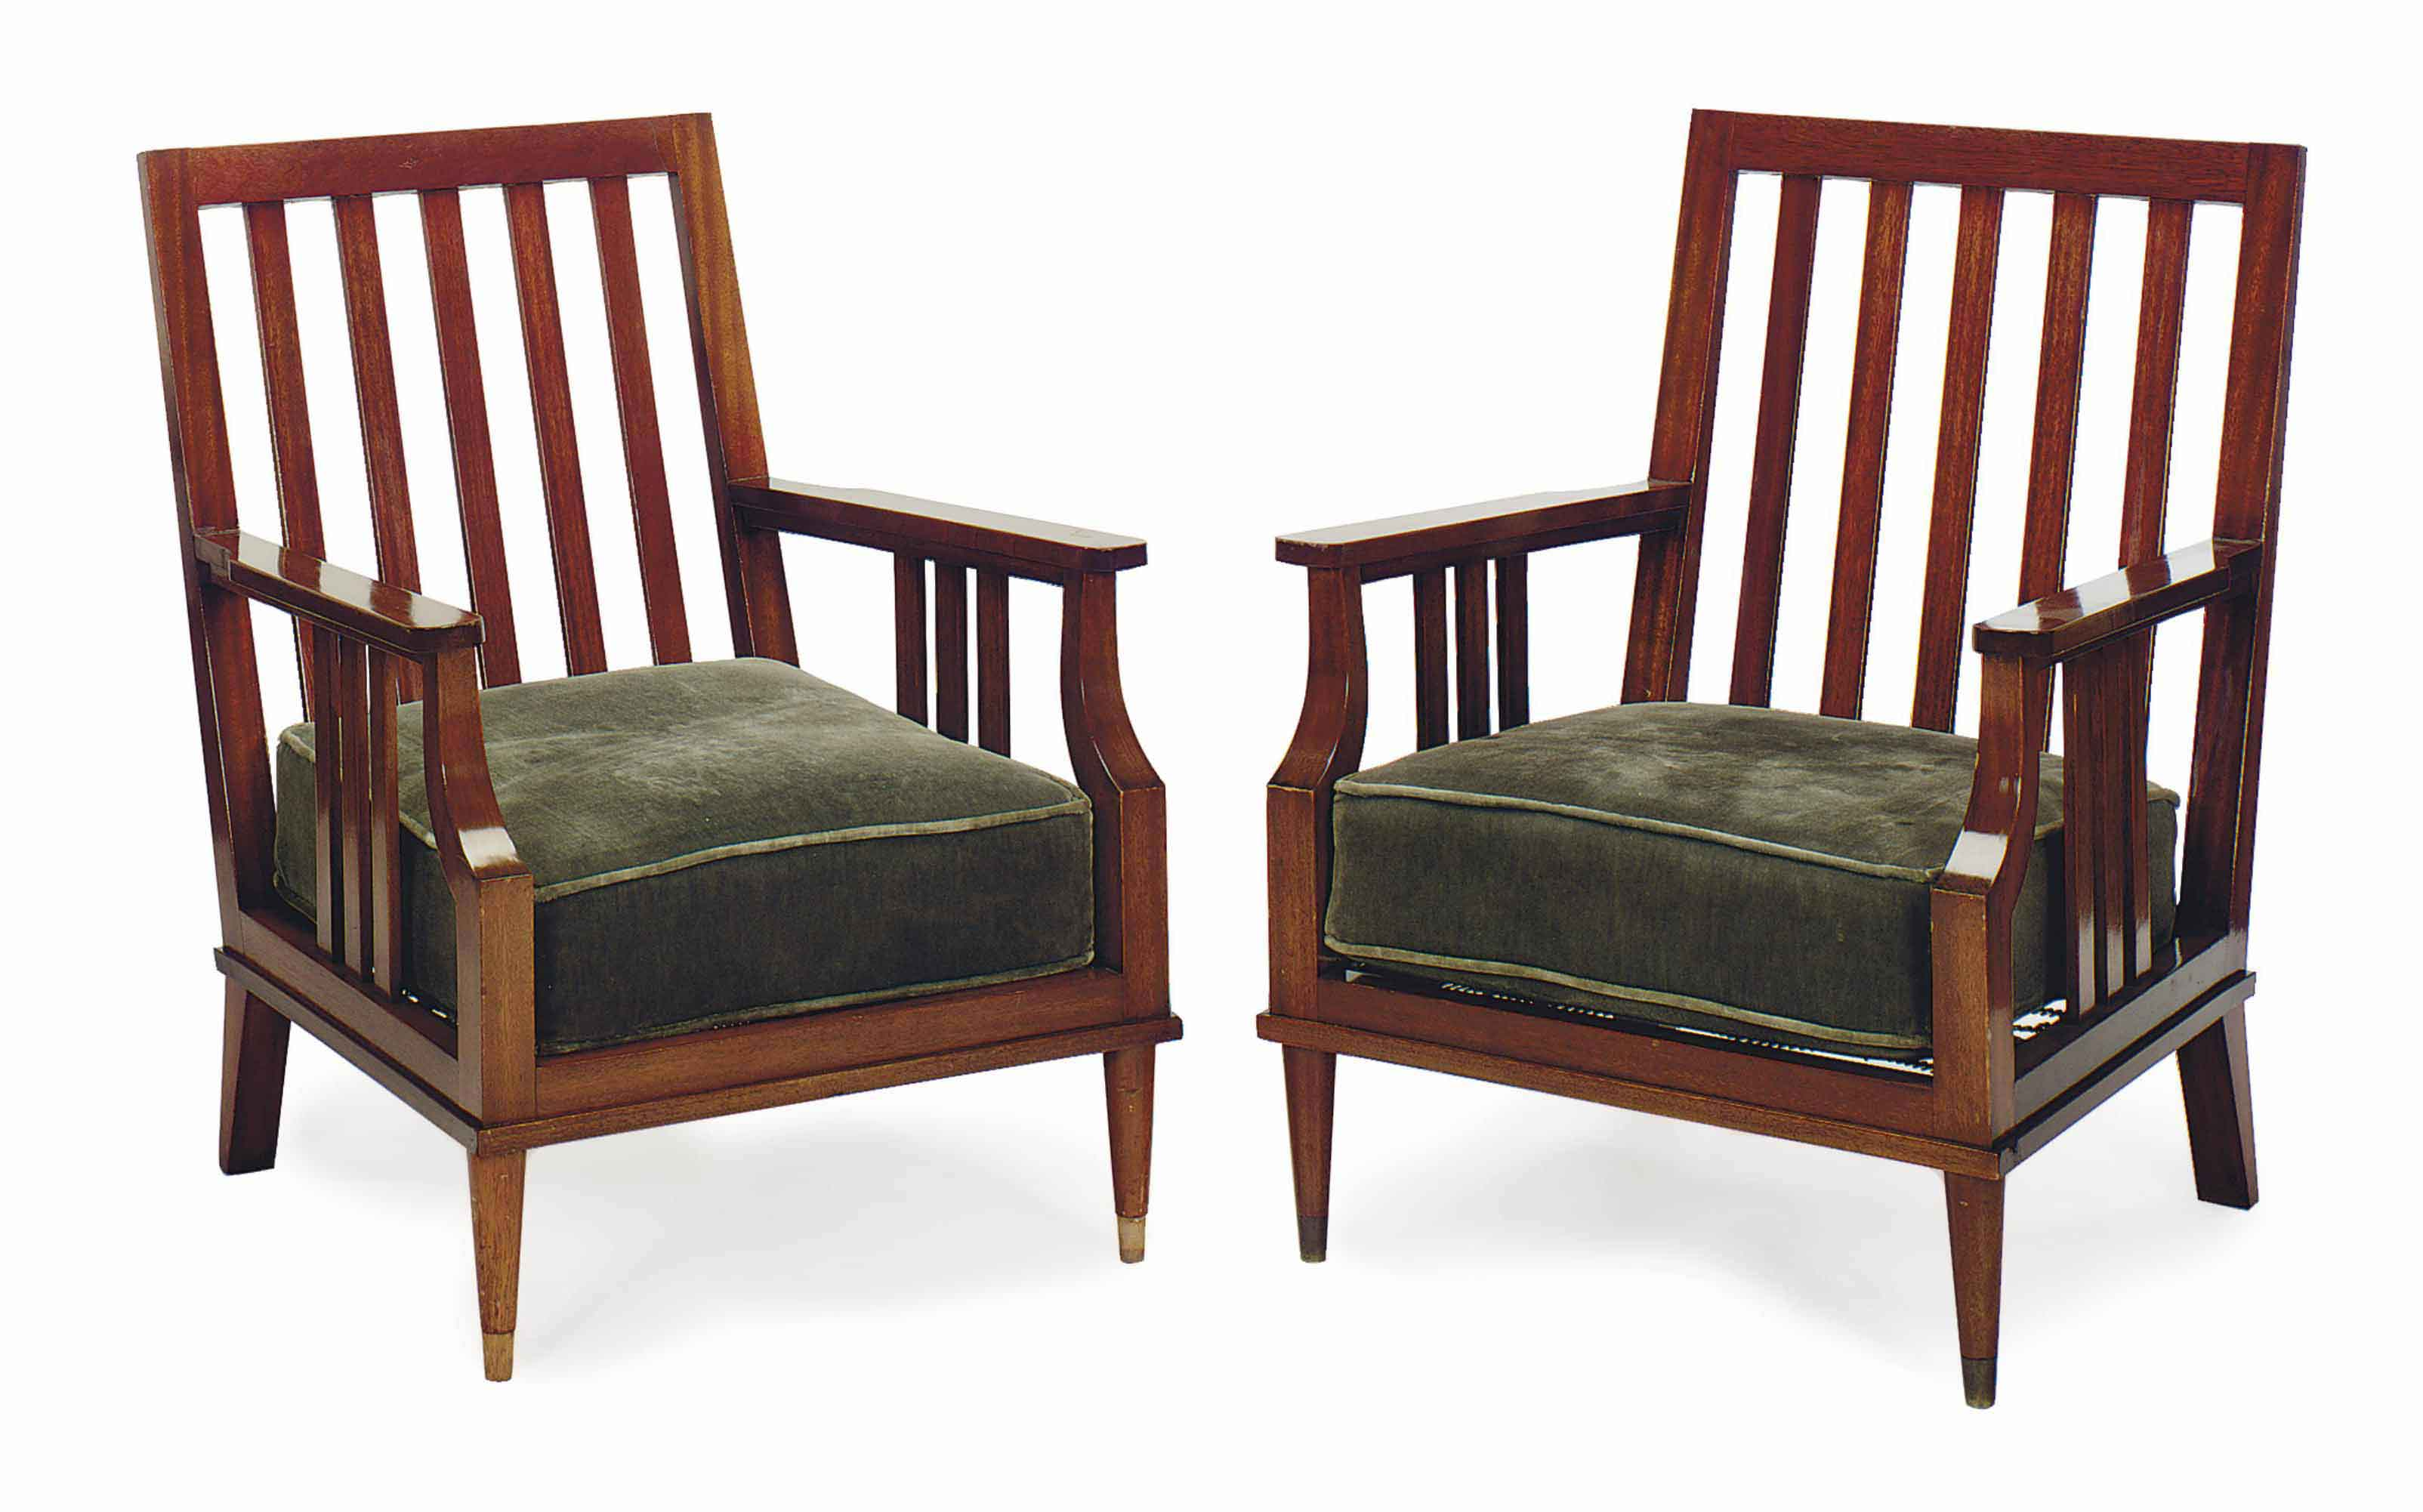 A PAIR OF FRENCH MAHOGANY ARMCHAIRS,